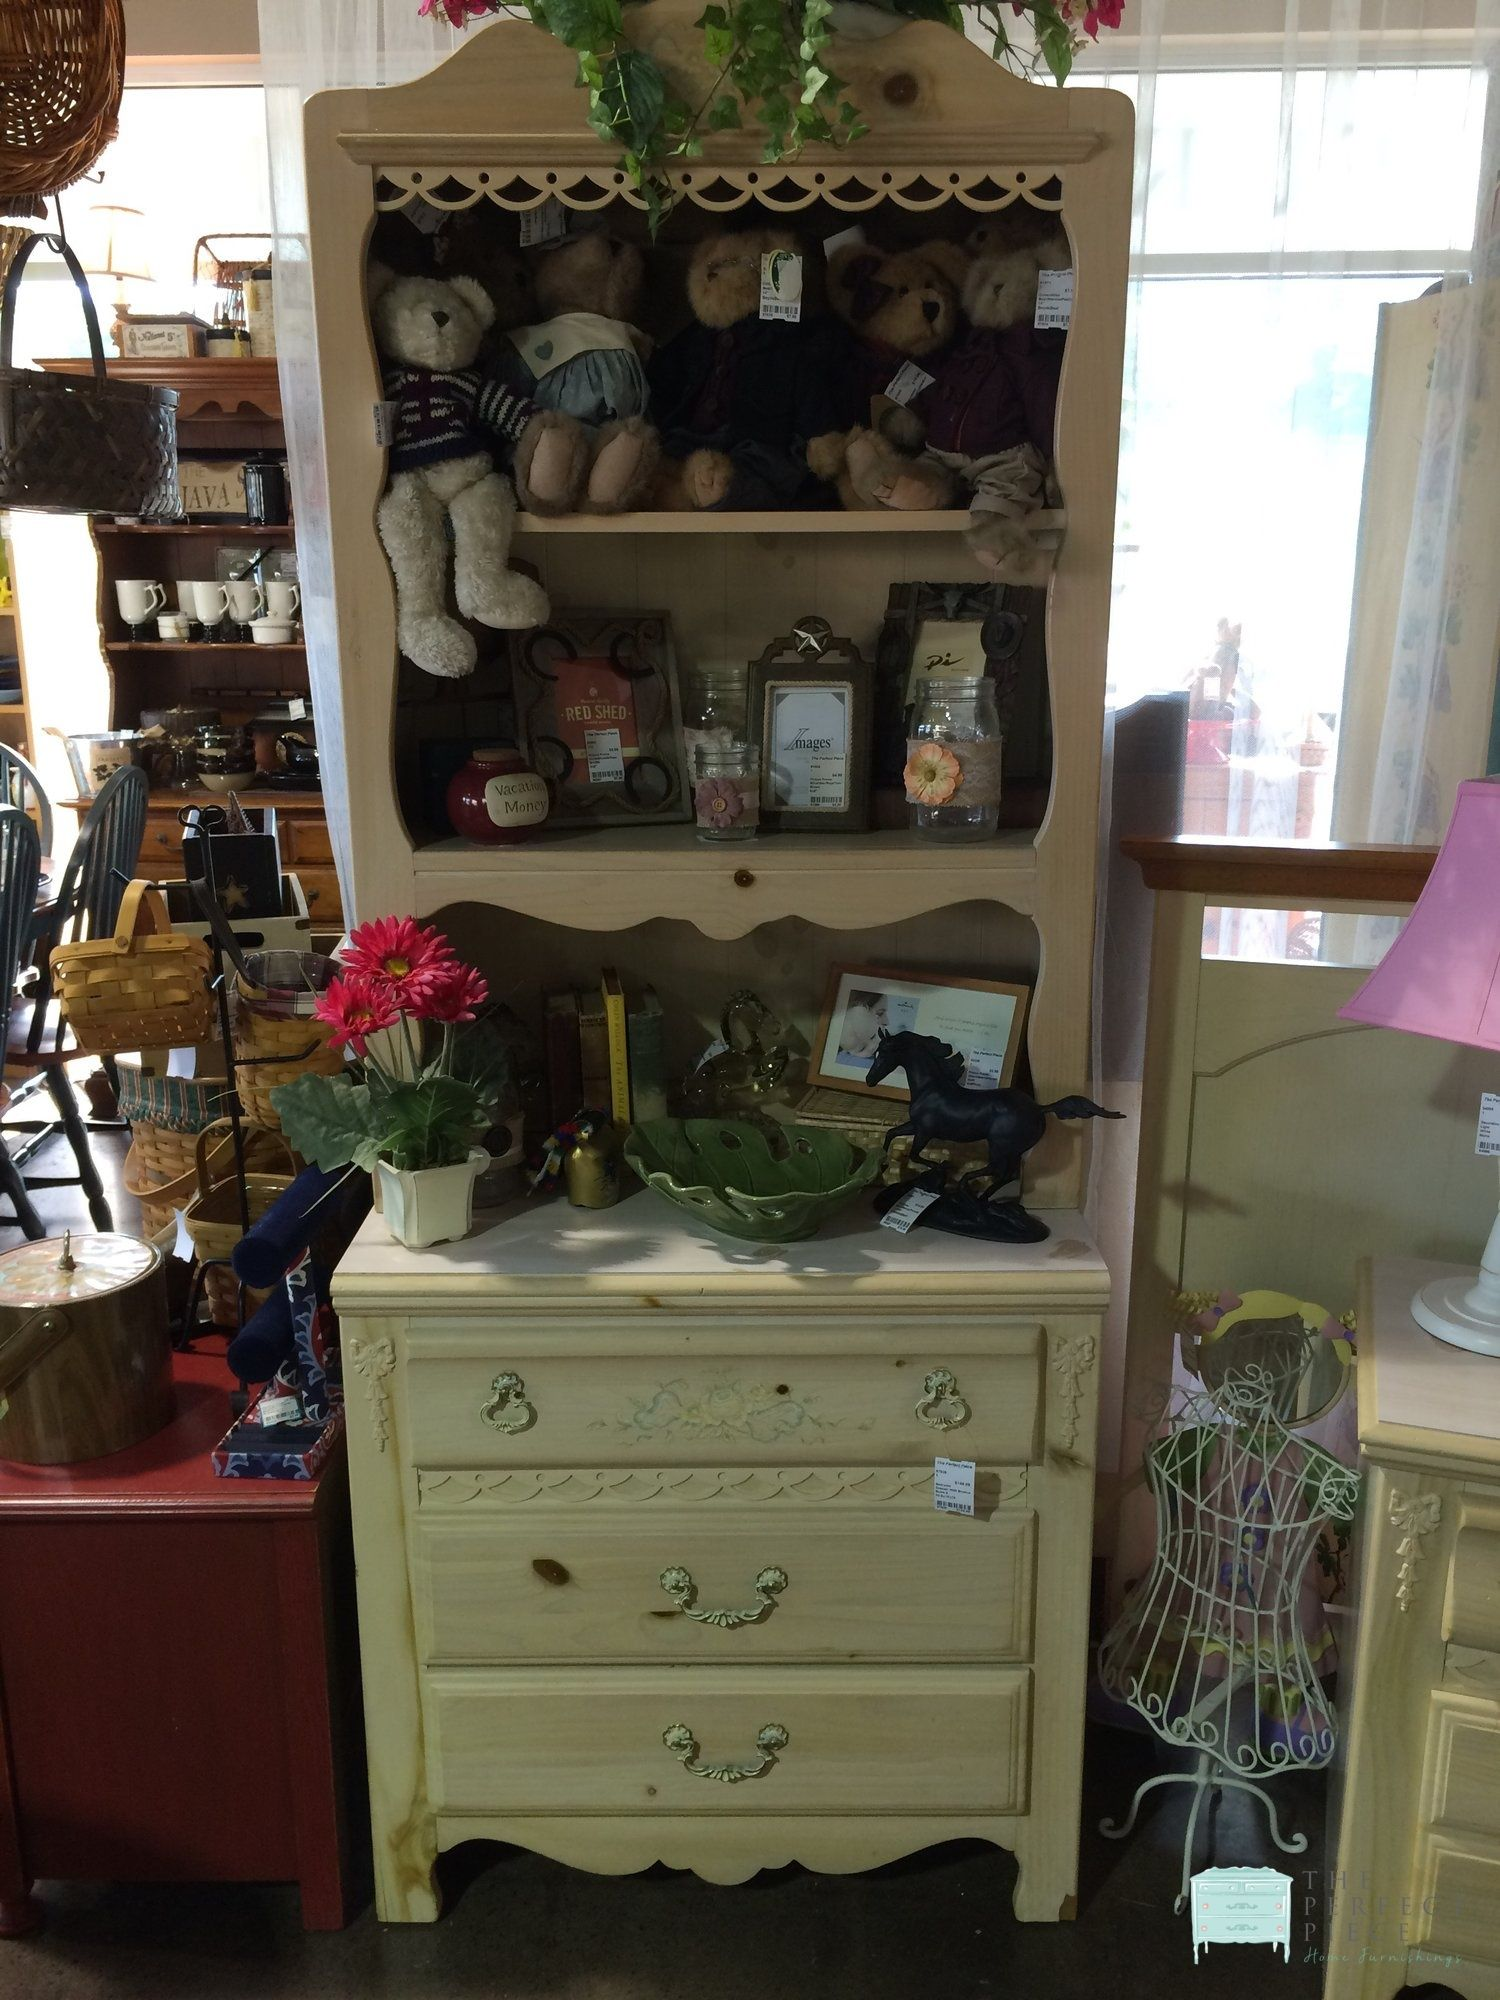 This Adorable Painted Pine Dresser With Bookcase Top Would Be Perfect In A Girl S Room There Are Wood Bow Accents An Home Furnishings Furnishings Pine Dresser